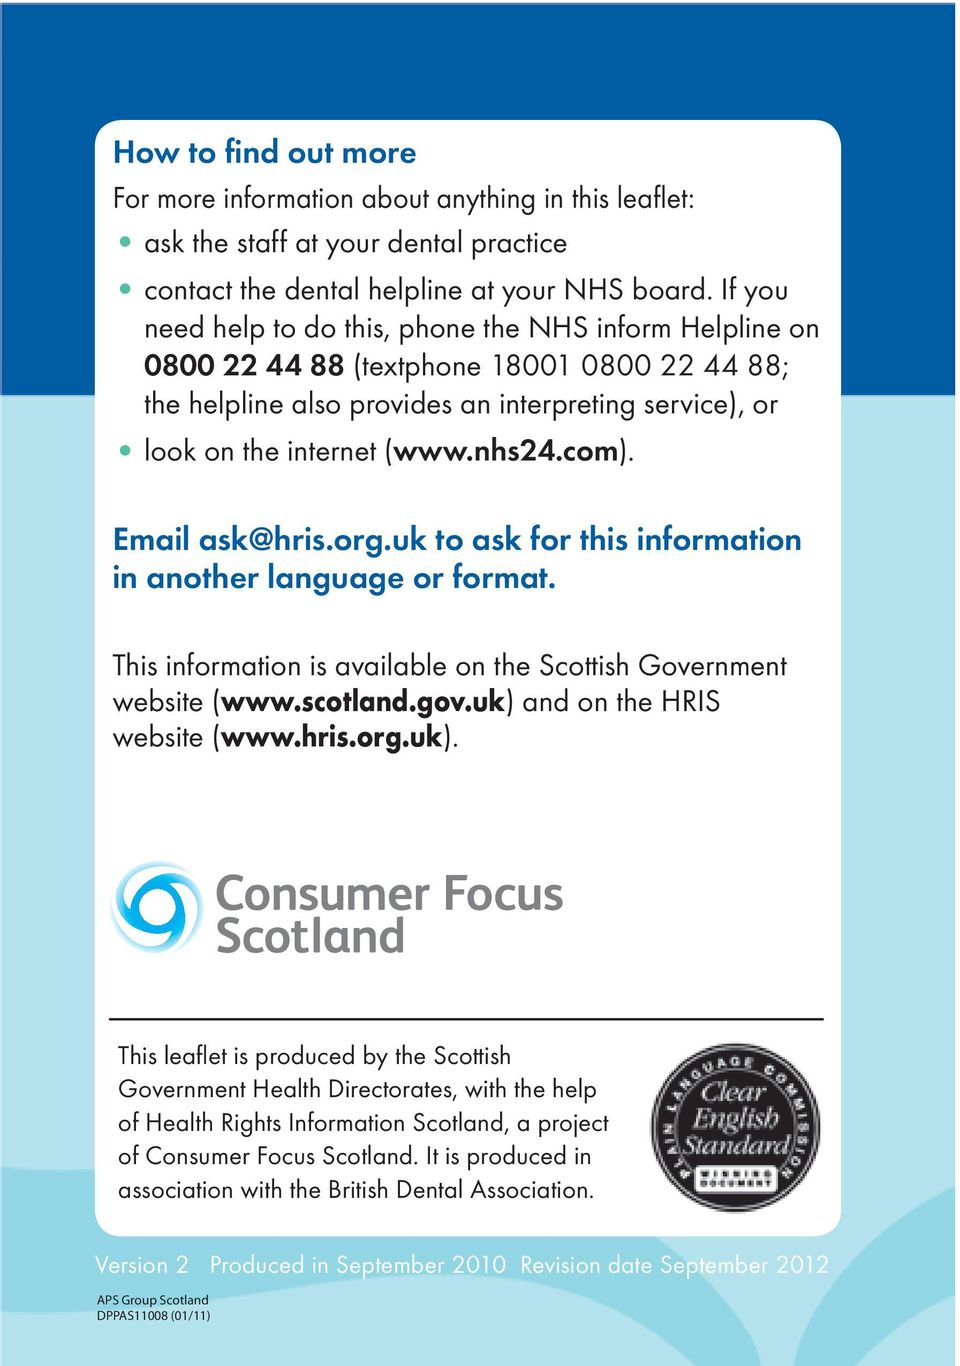 com). Email ask@hris.org.uk to ask for this information in another language or format. This information is available on the Scottish Government website (www.scotland.gov.